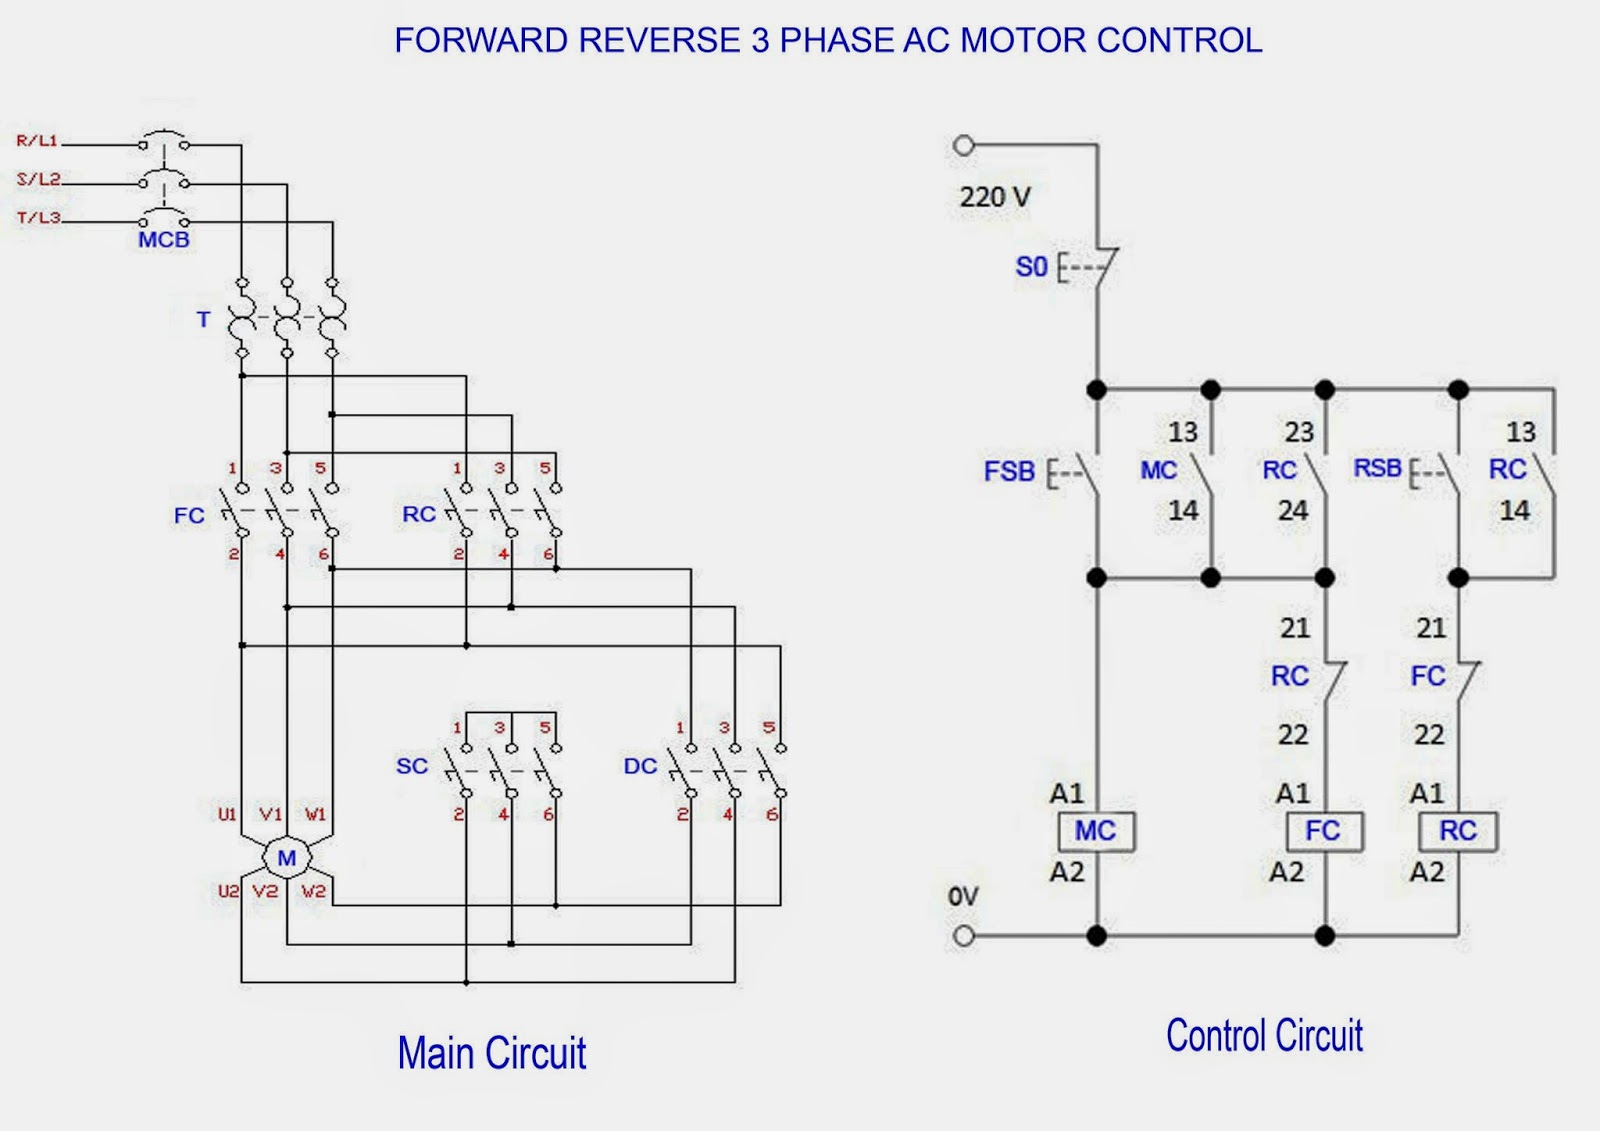 wiring diagram for auto air conditioning images air conditioning air conditioning works diagram how image about wiring diagram air also carrier ac wiring diagram on conditioning wiring diagram also flex lite fan